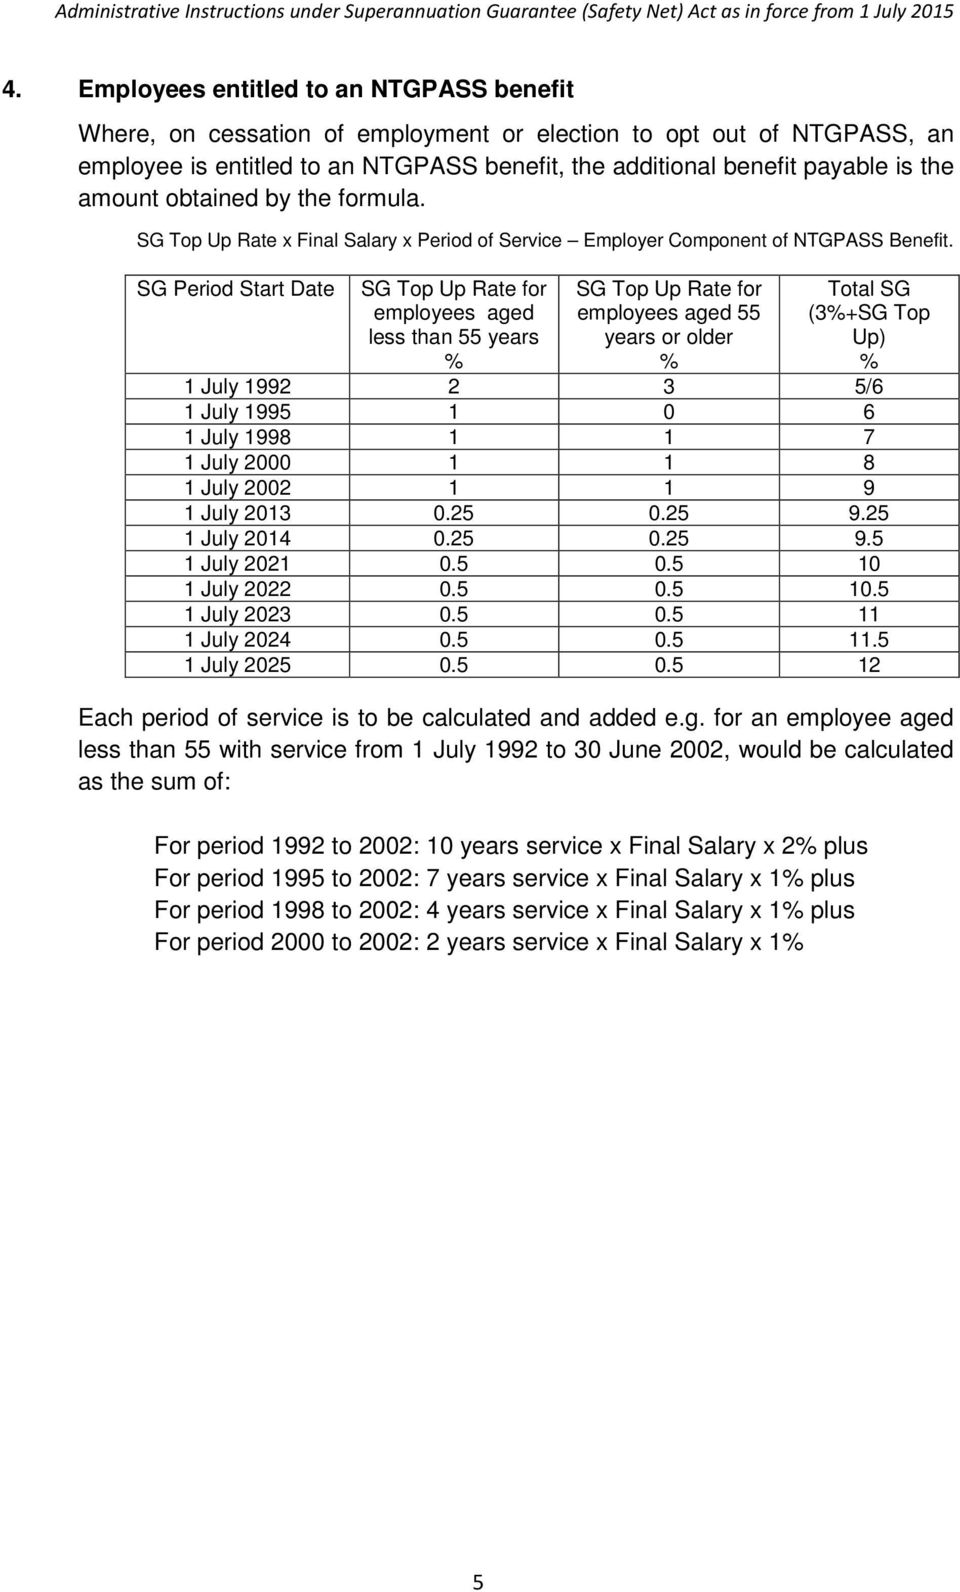 SG Period Start Date SG Top Up Rate for employees aged less than 55 years SG Top Up Rate for employees aged 55 years or older Total SG (3+SG Top Up) 1 July 1992 2 3 5/6 1 July 1995 1 0 6 1 July 1998